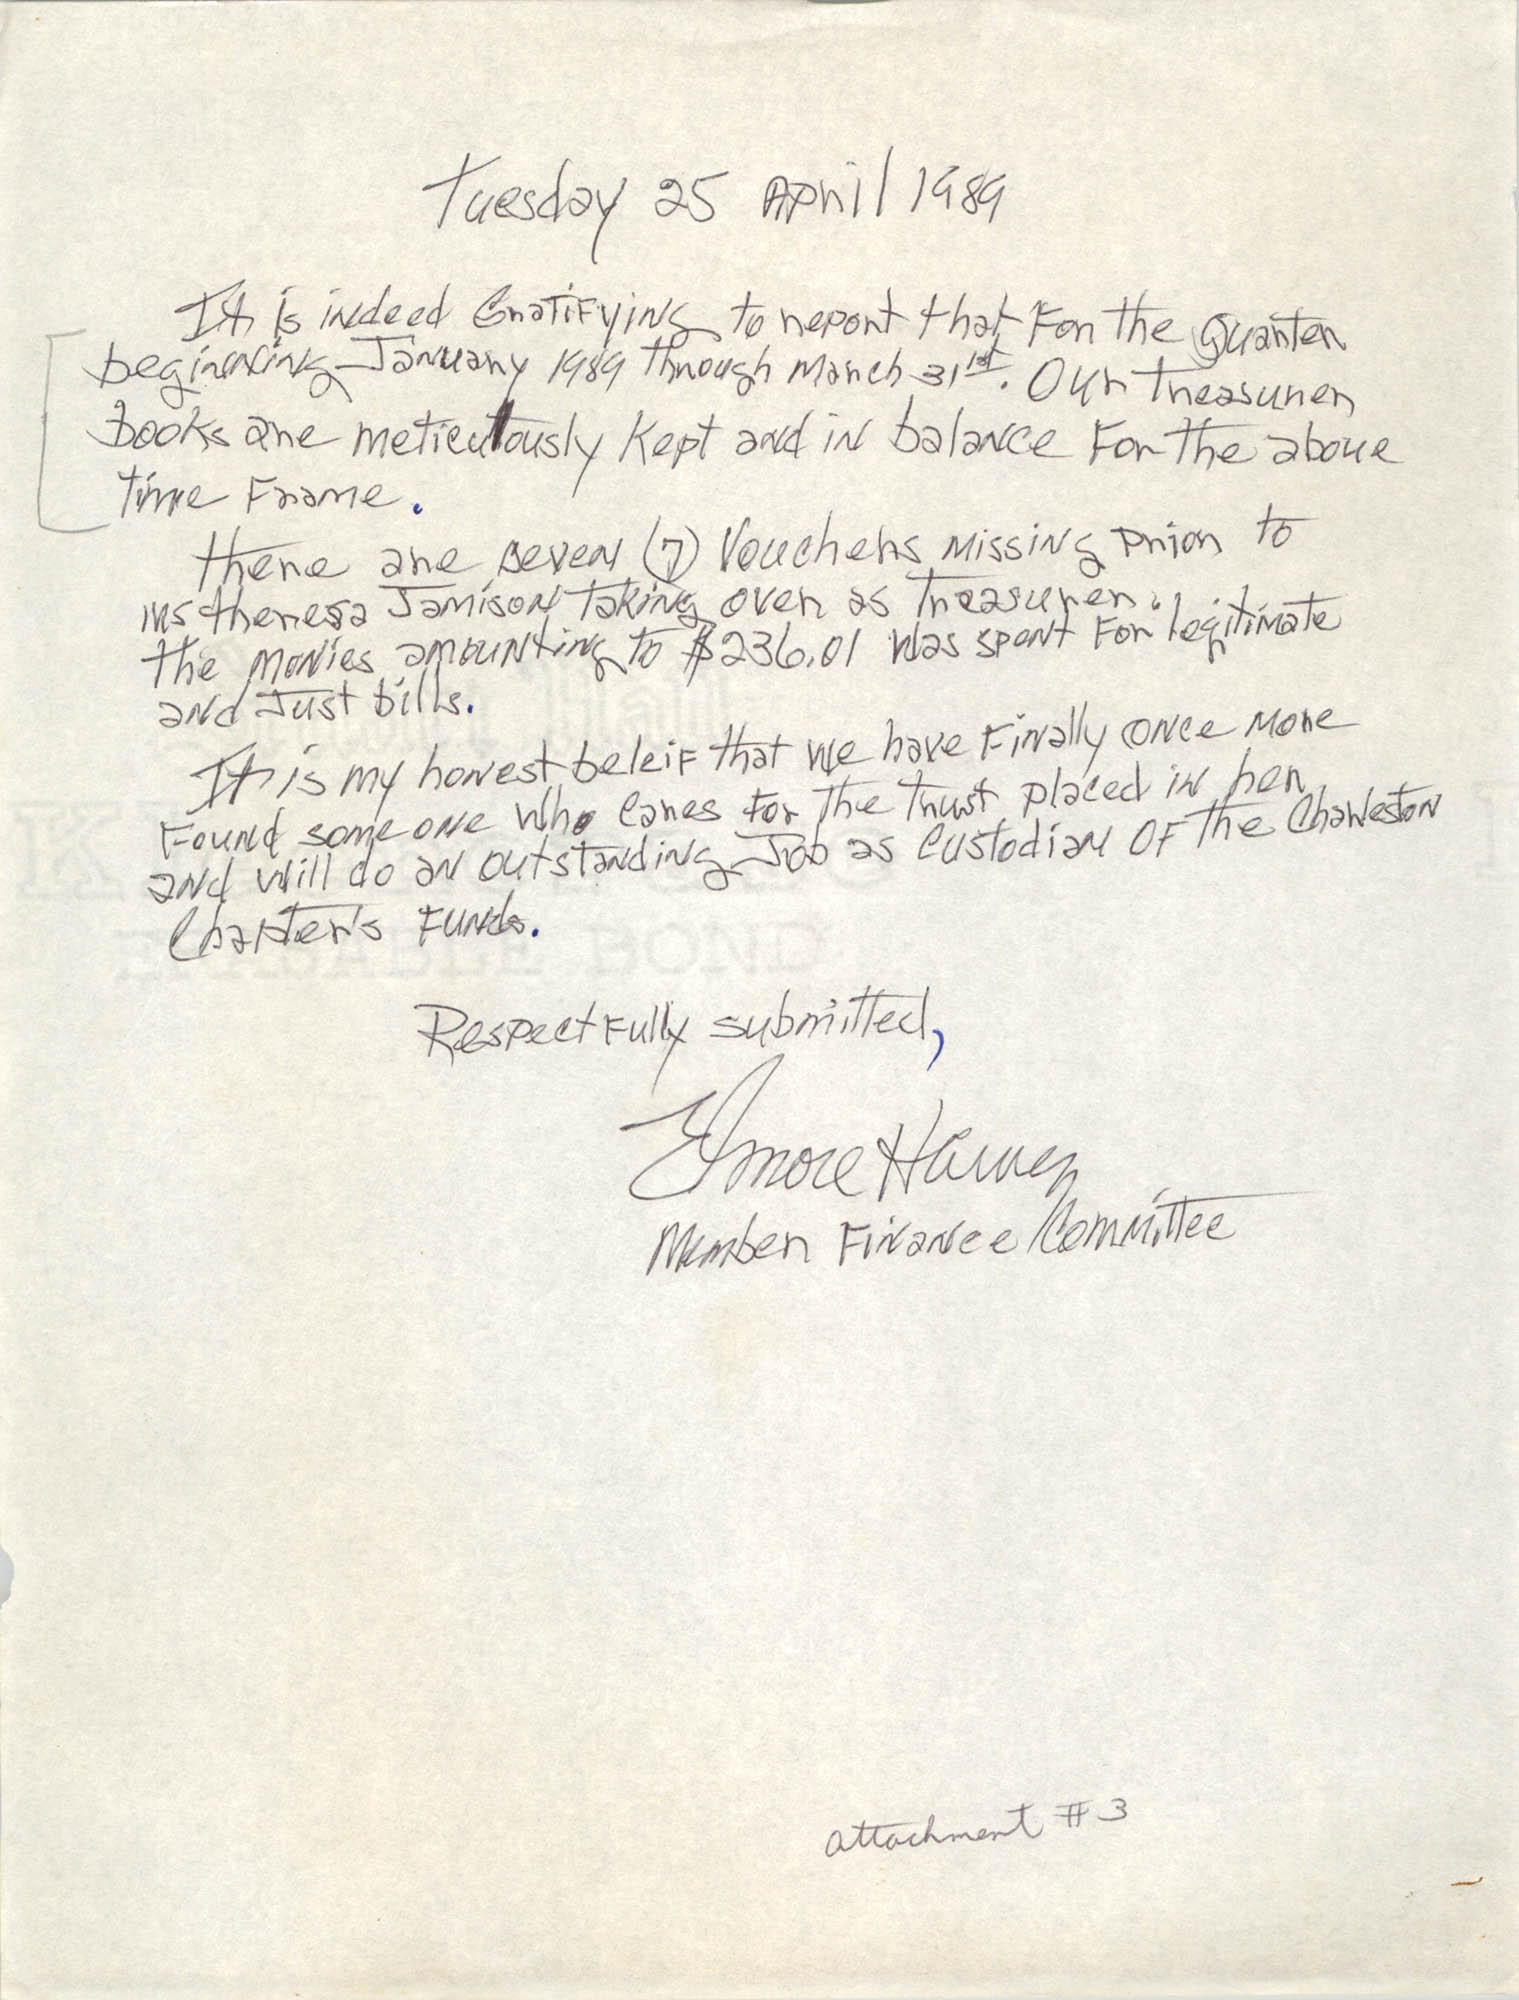 Letter from Elmore Harvey, April 25, 1989